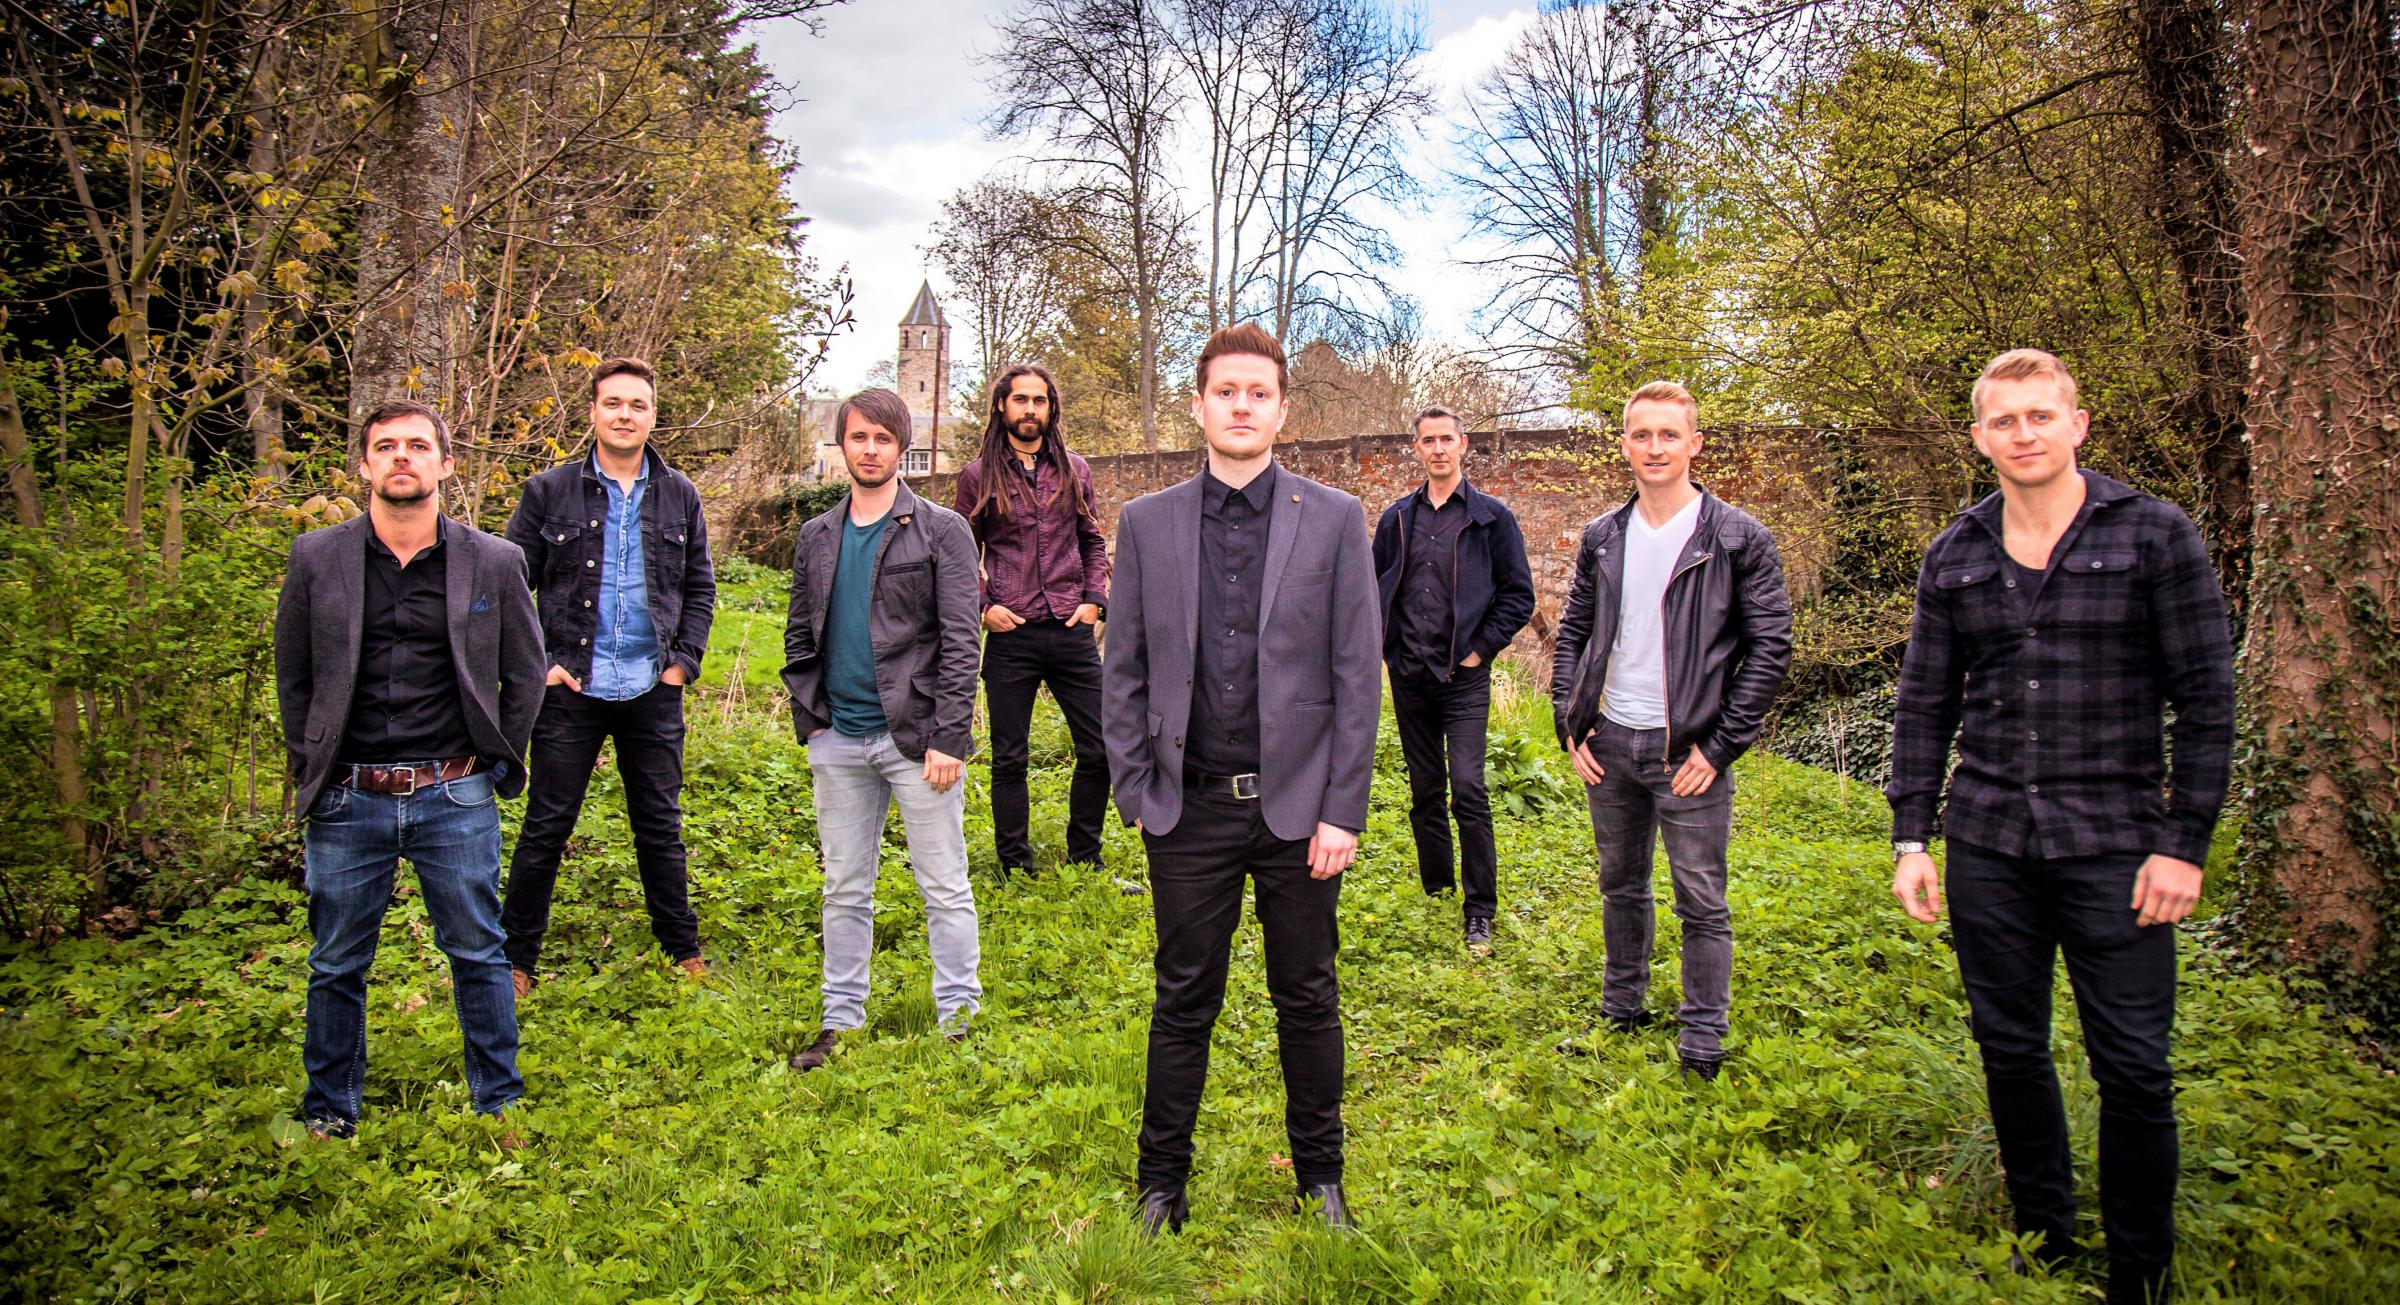 Skerryvore have harnessed the power of a live performance on their new album EVO